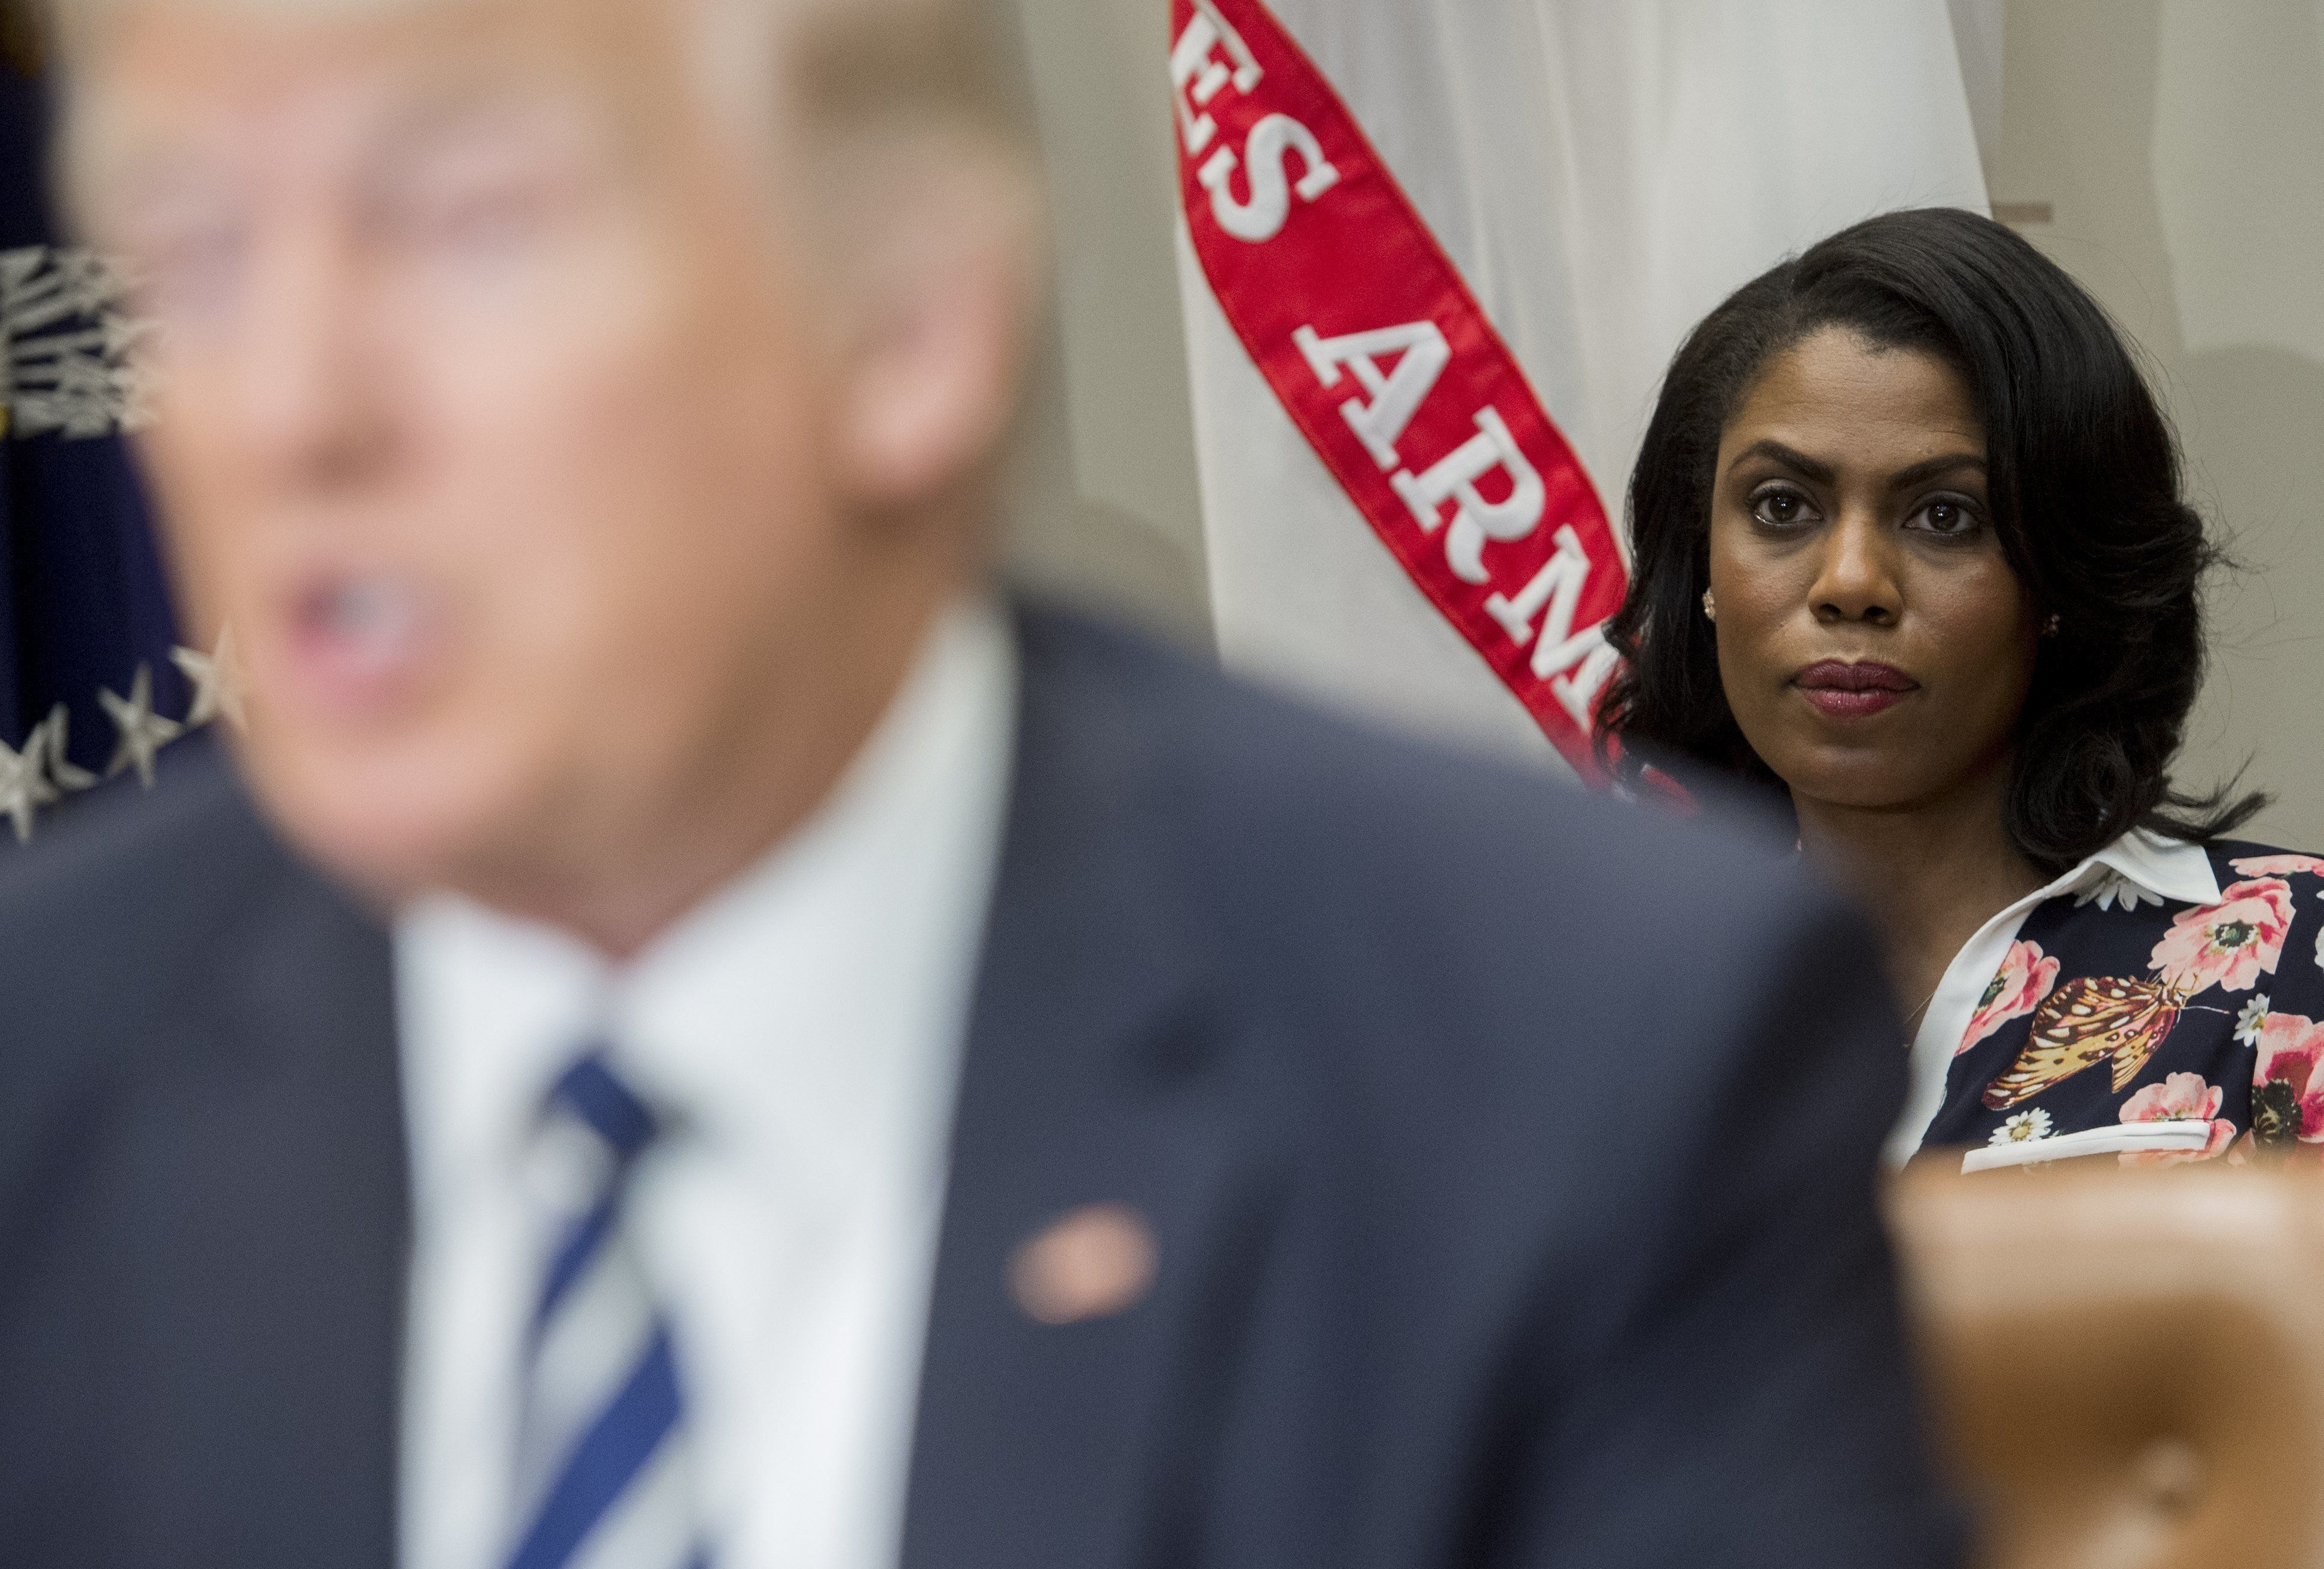 Omarosa Claims Trump Repeatedly Used 'N-Word' During 'The Apprentice'